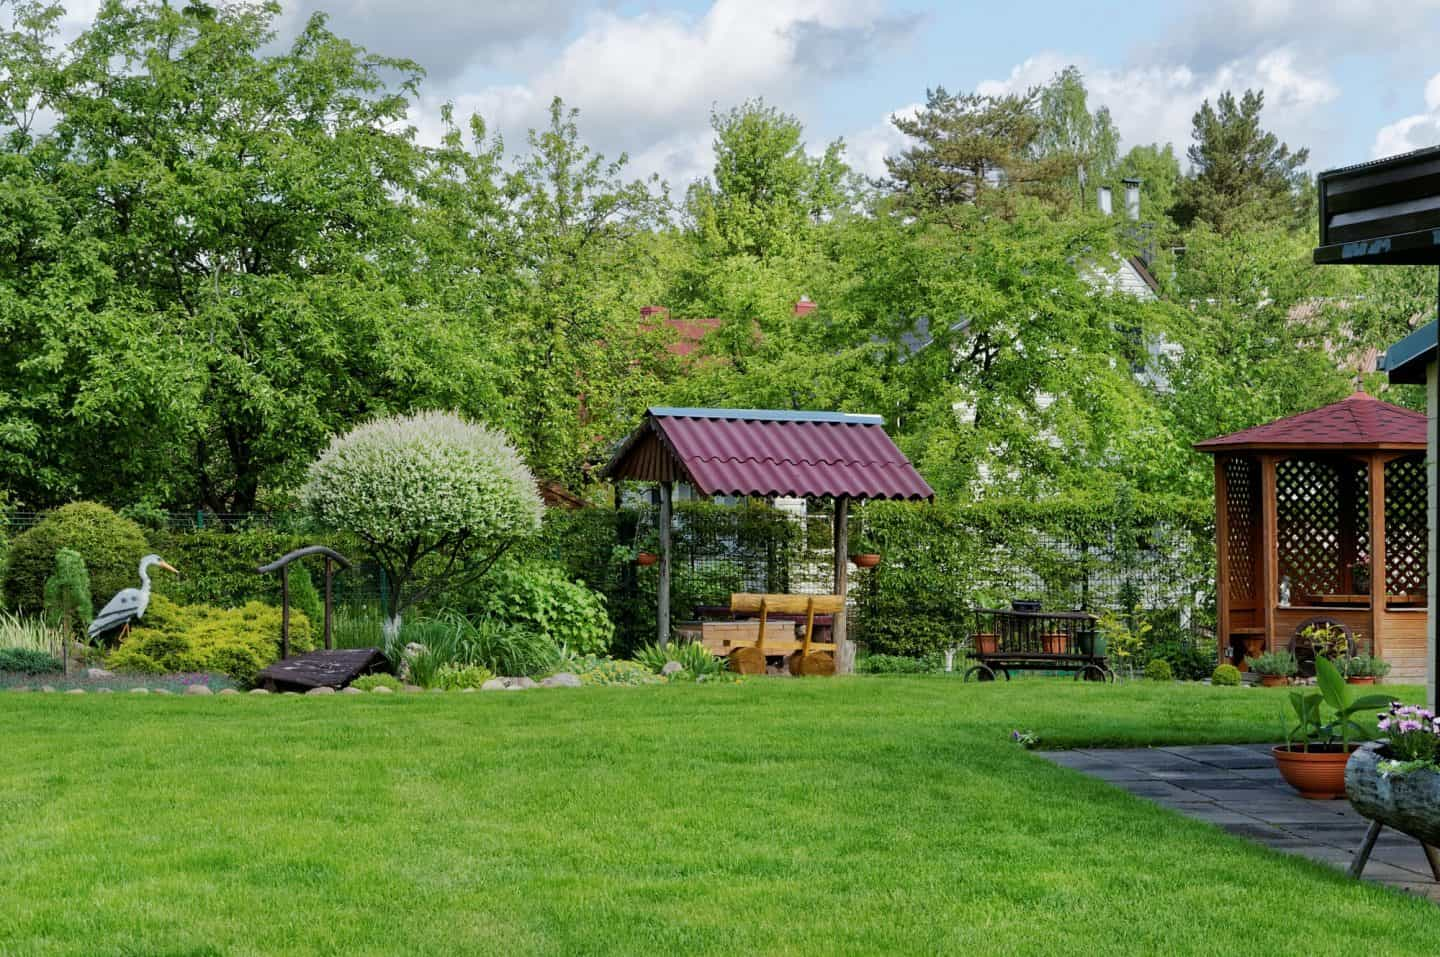 How Can A Garden Space Become More Peaceful?